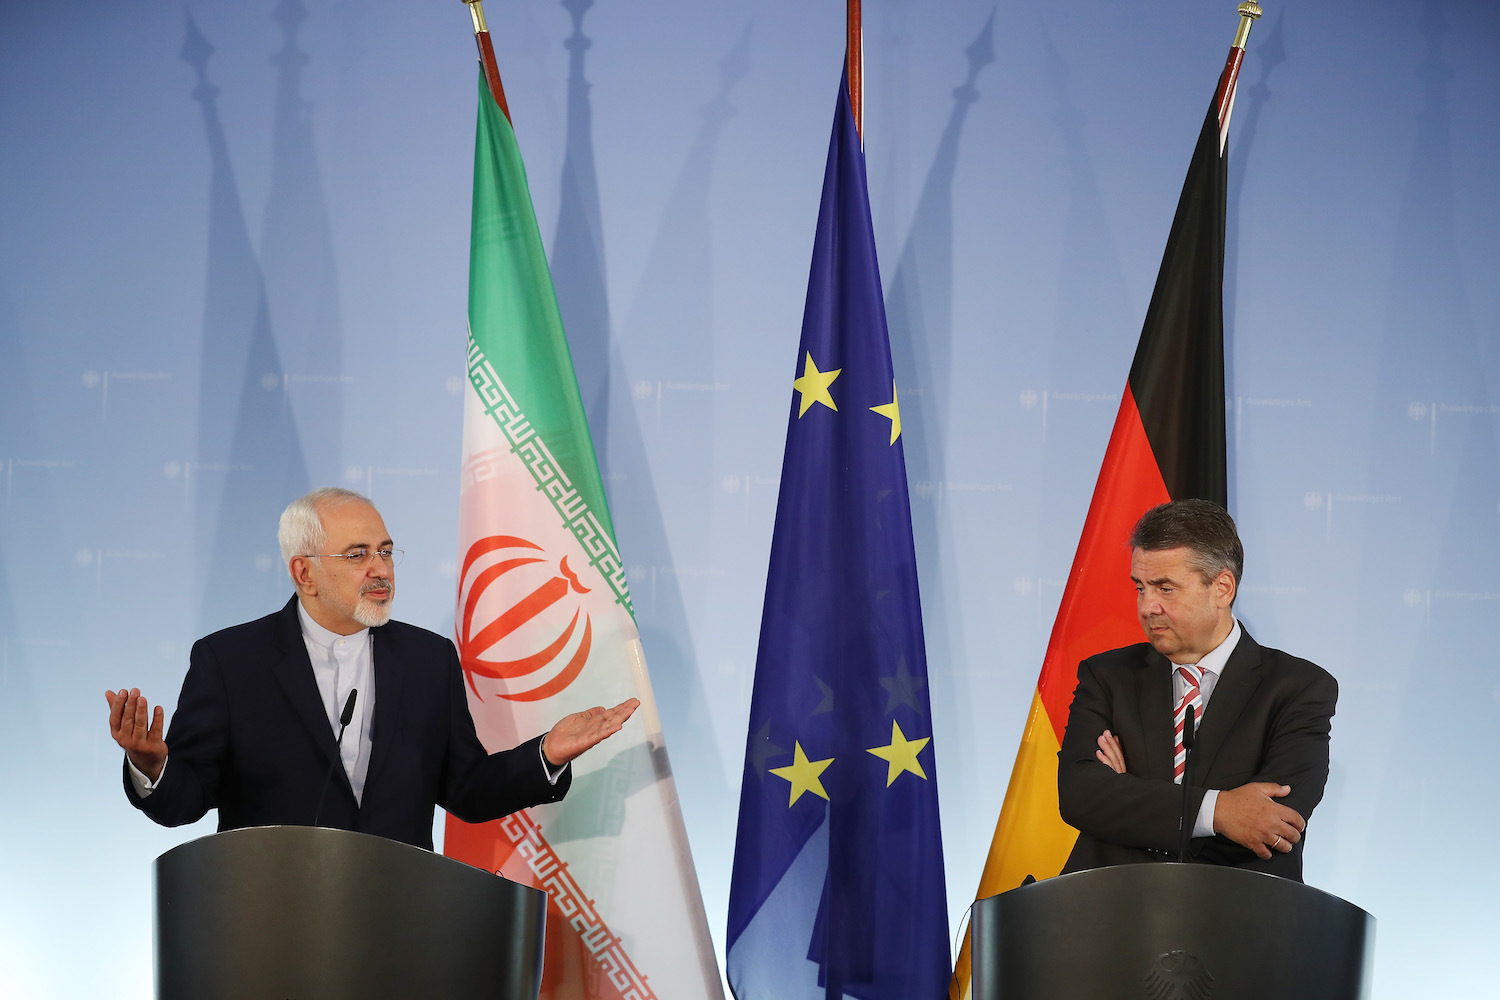 BERLIN, GERMANY - JUNE 27: Iranian Minister of Foreign Affairs Mohammad Javad Zarif (L) and German Foreign Minister Sigmar Gabriel speak to the media following talks on June 27, 2017 in Berlin, Germany. The two men discussed bilateral relations as well as the Iran nuclear agreement, which eases international sanctions against Iran in exchange for commitments by Iran on its nuclear program. (Photo by Sean Gallup/Getty Images)